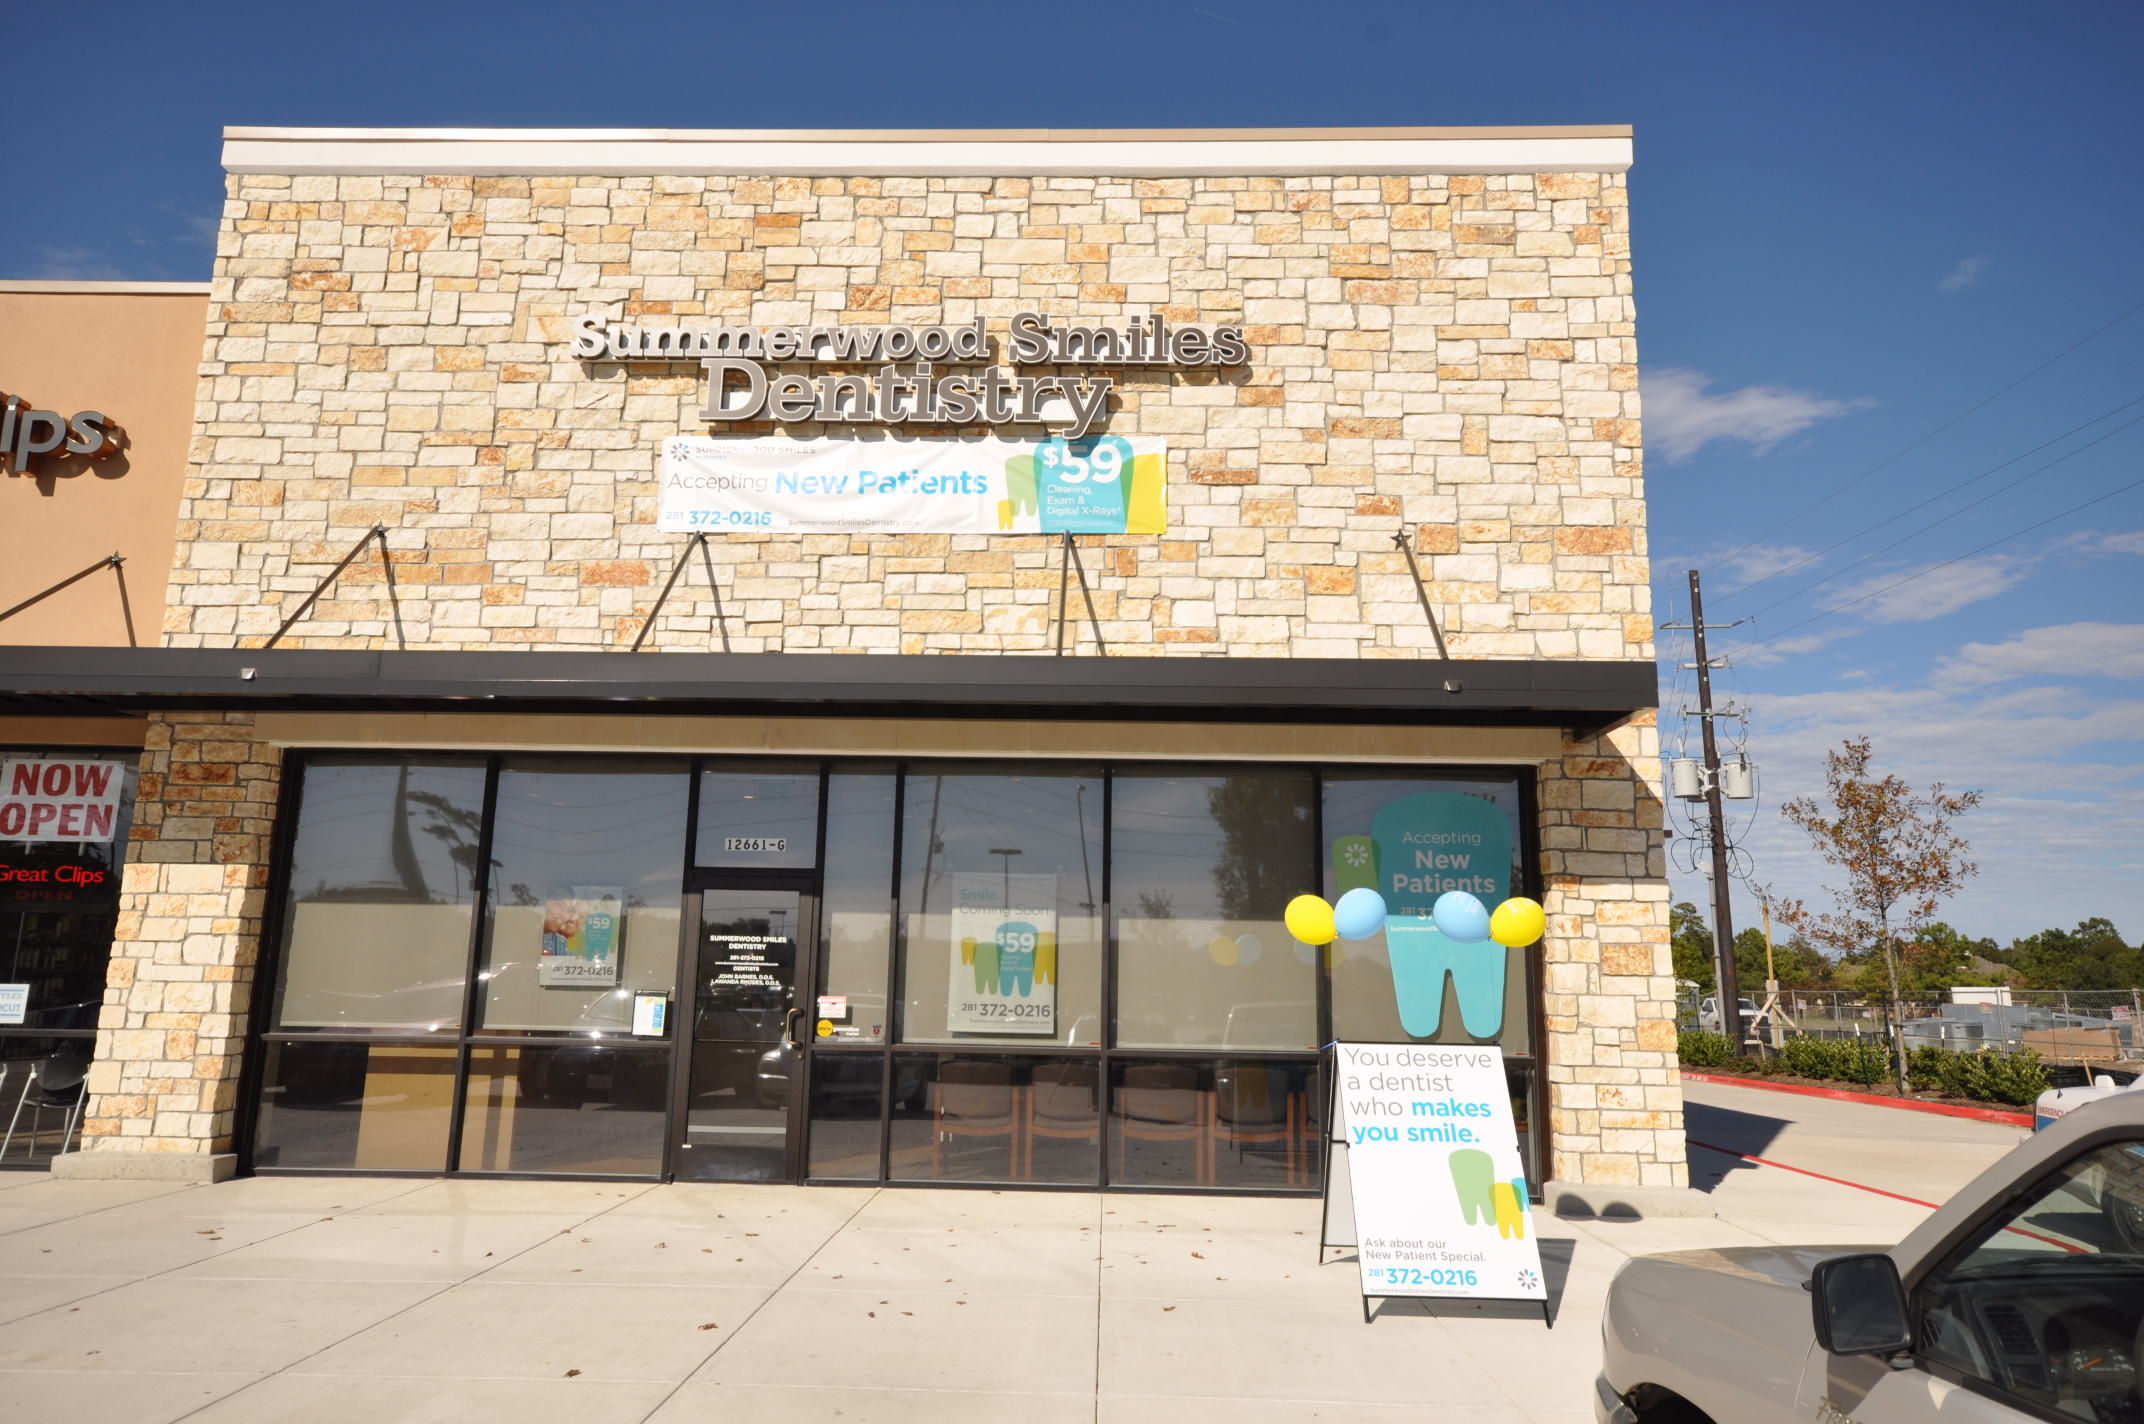 Summerwood Smiles Dentistry